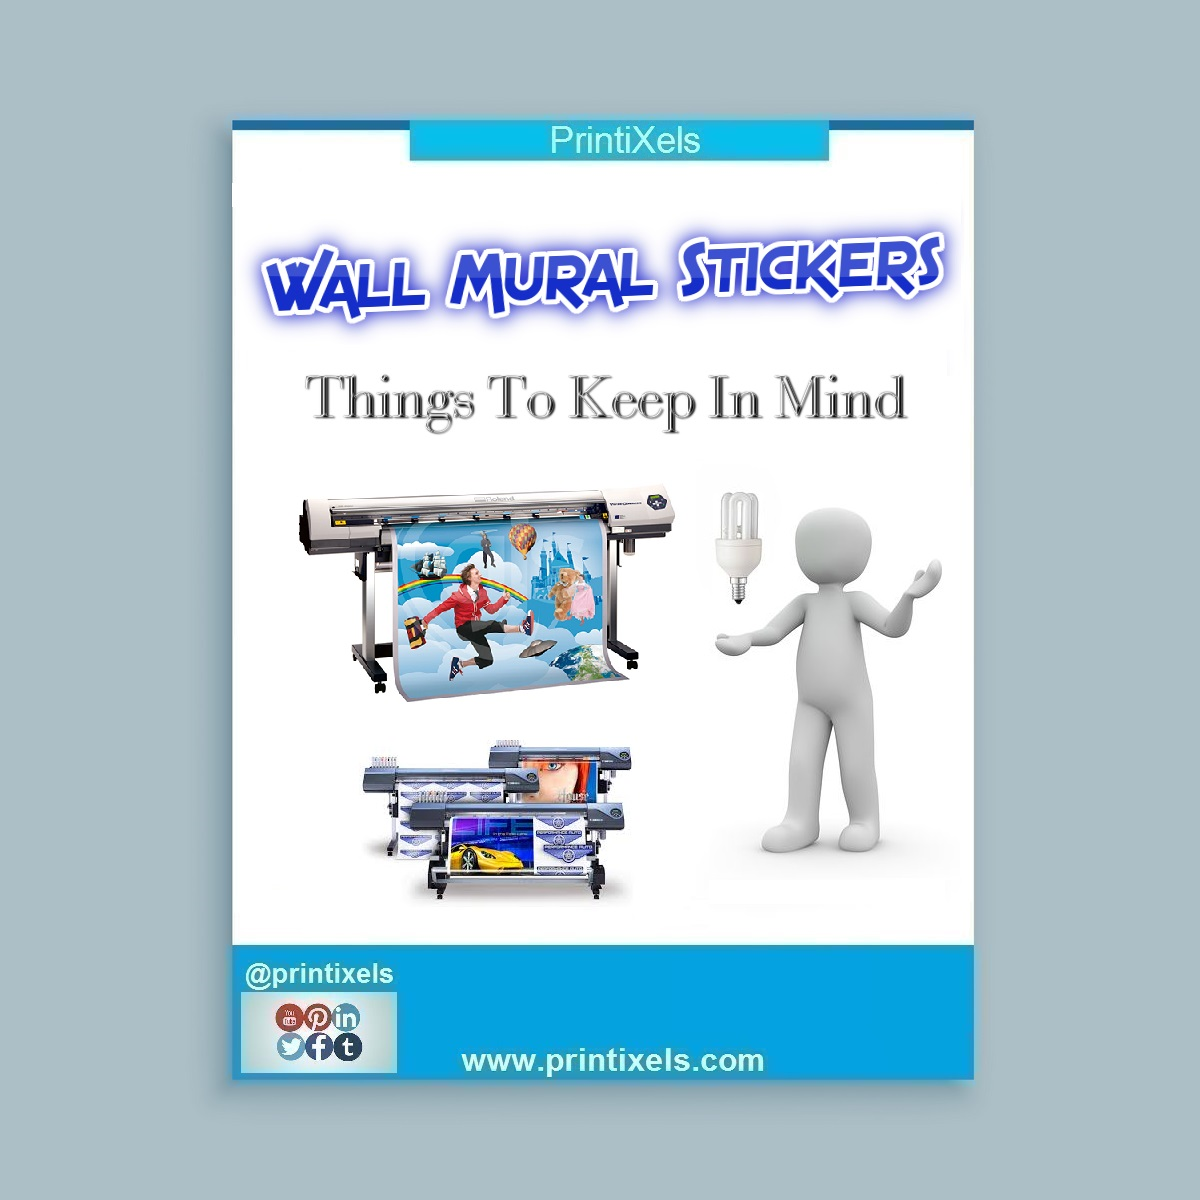 Printing Wall Mural Stickers: Things To Keep In Mind